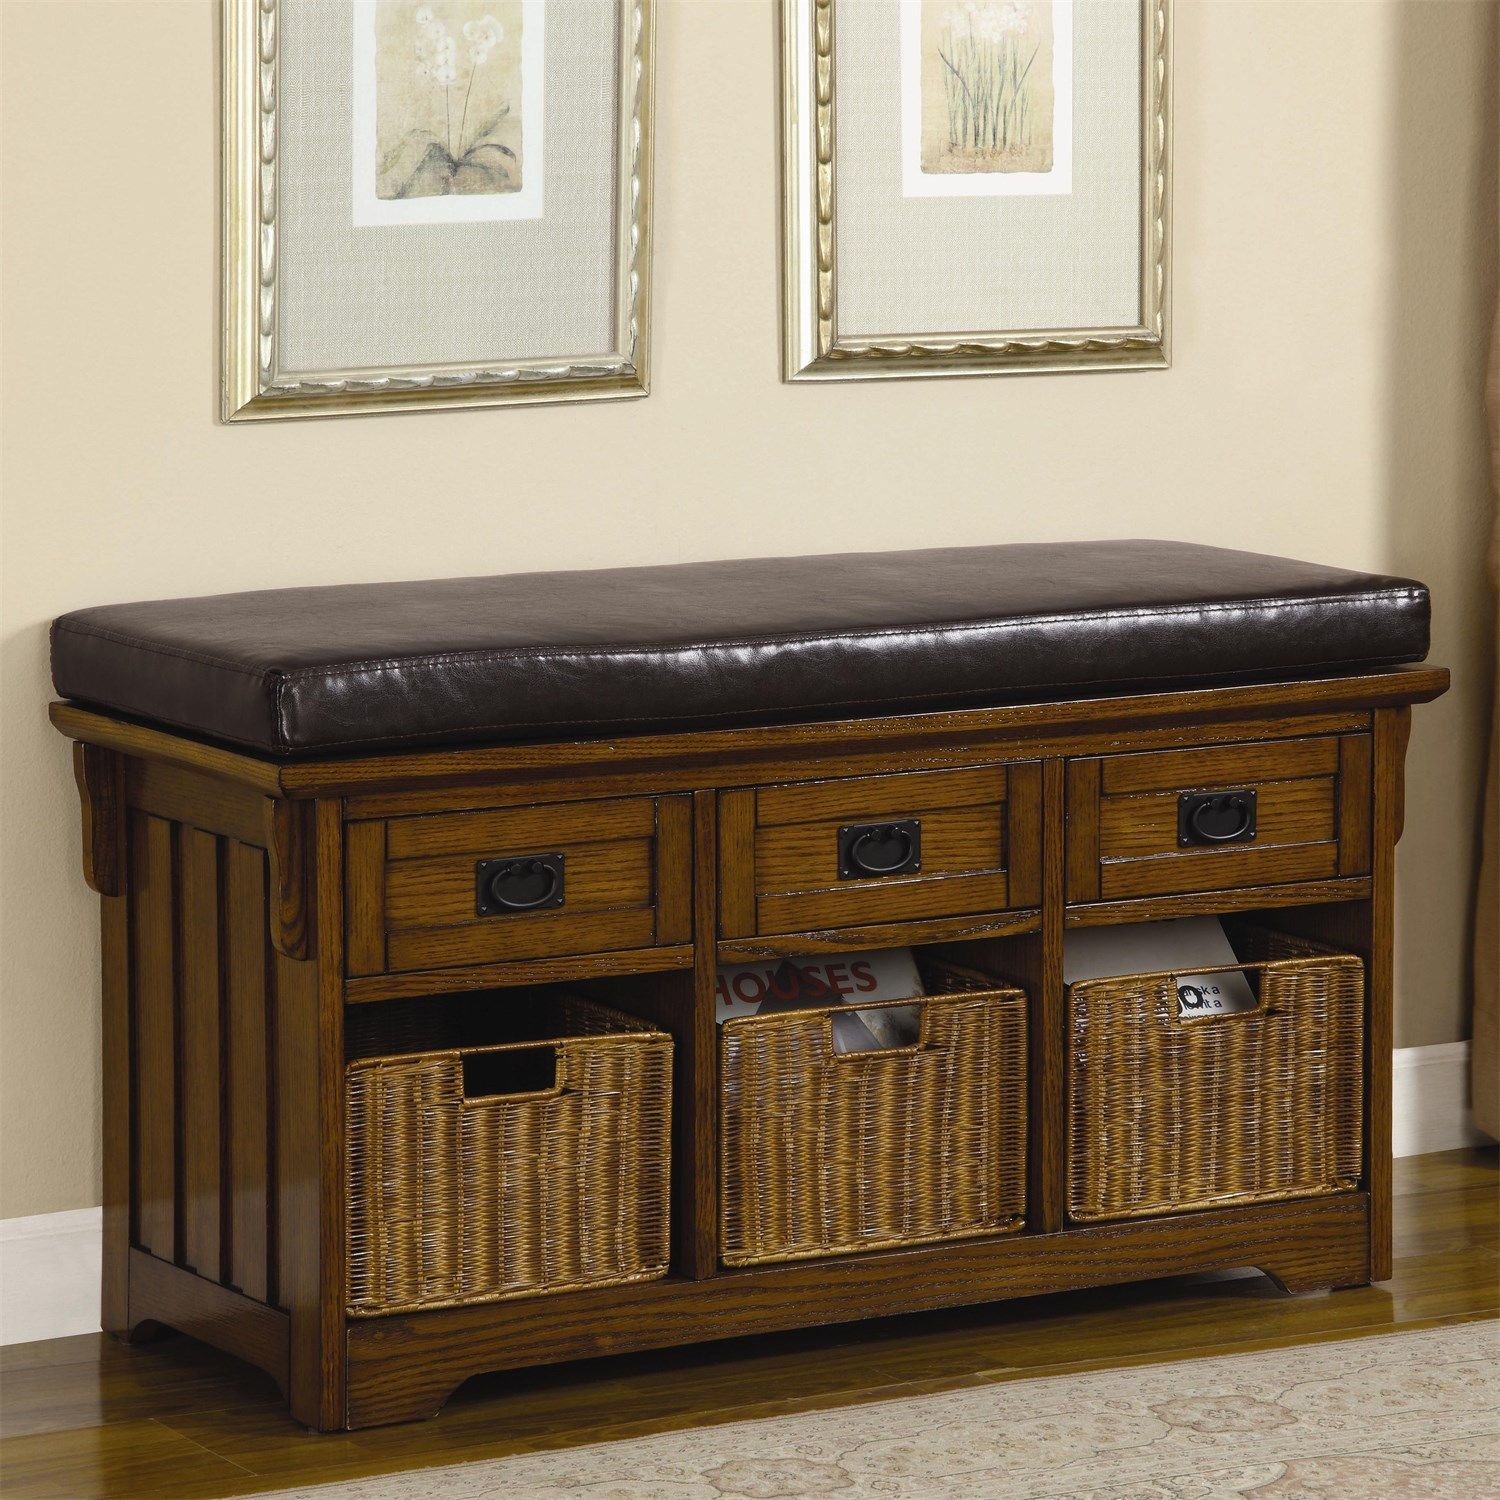 Coaster Furniture 501061 Small Storage Bench With Upholstered Seat Wooden Storage Bench Bench With Storage Small Storage Bench